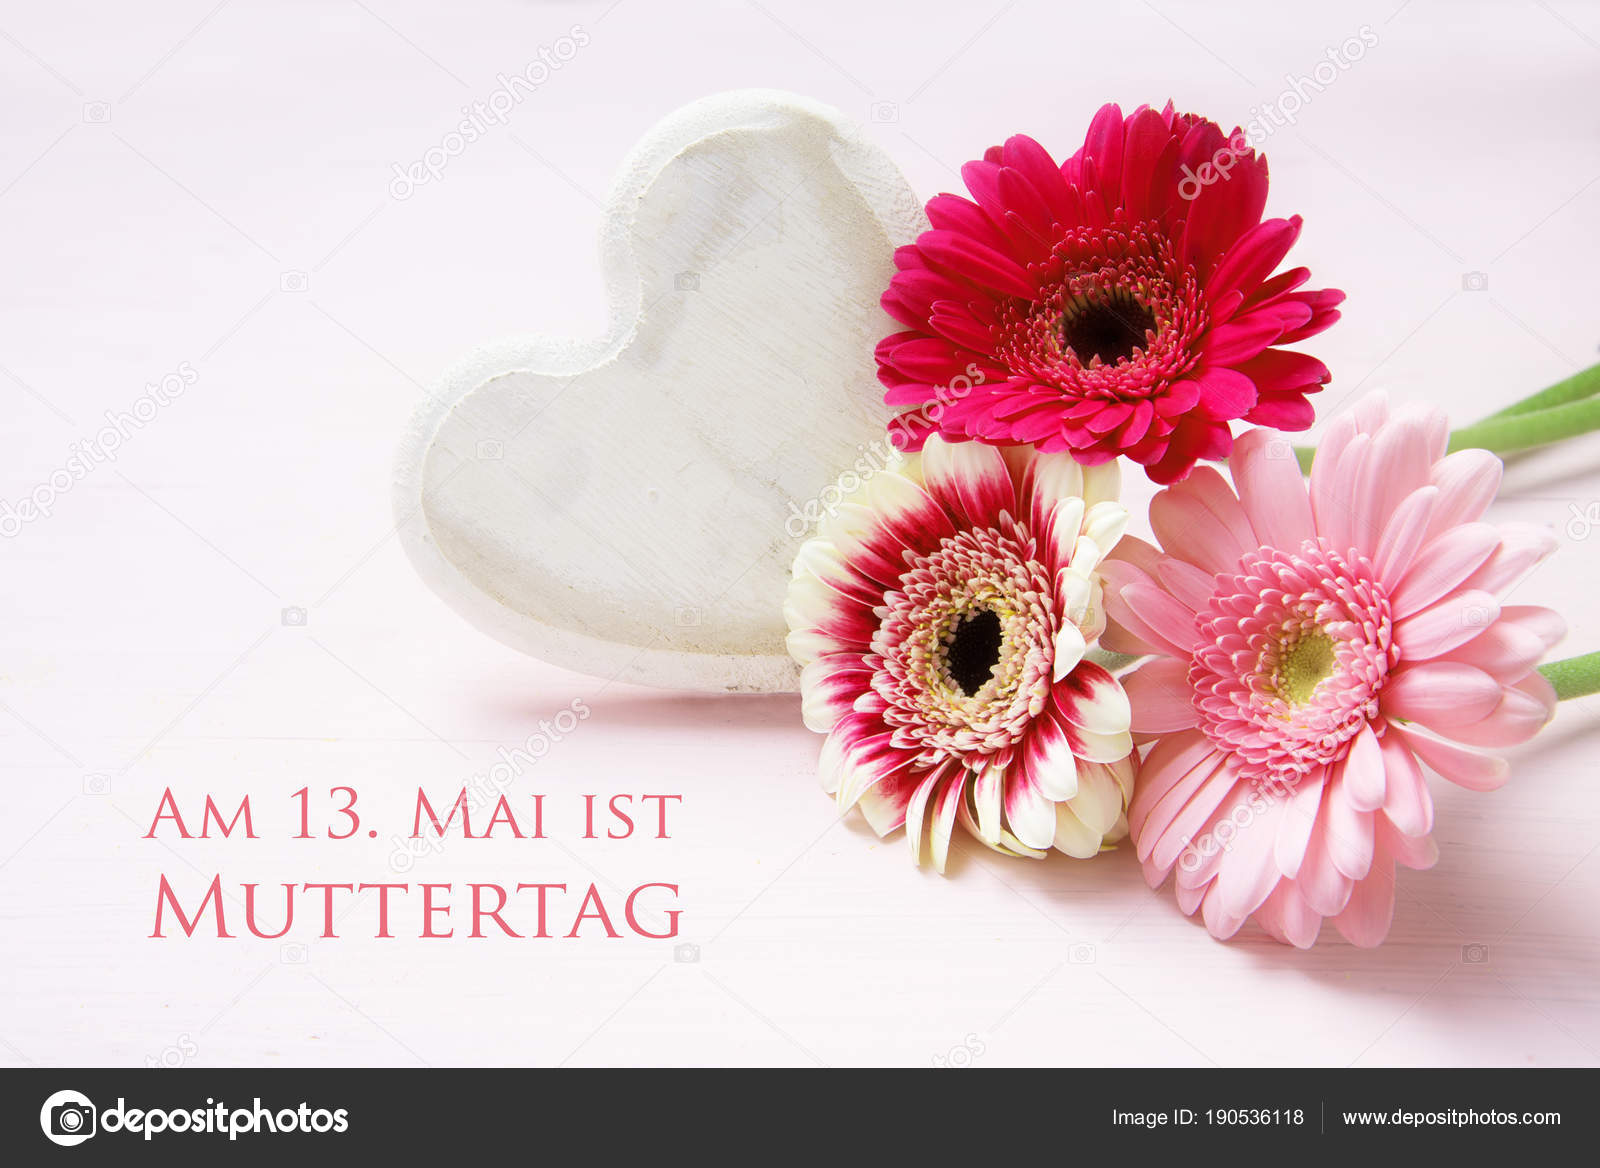 Pink flowers and a white painted wooden heart on a pastel colored pink flowers and a white painted wooden heart on a pastel colored background german text am 13 mai ist muttertag meaning may 13 is mothers day mightylinksfo